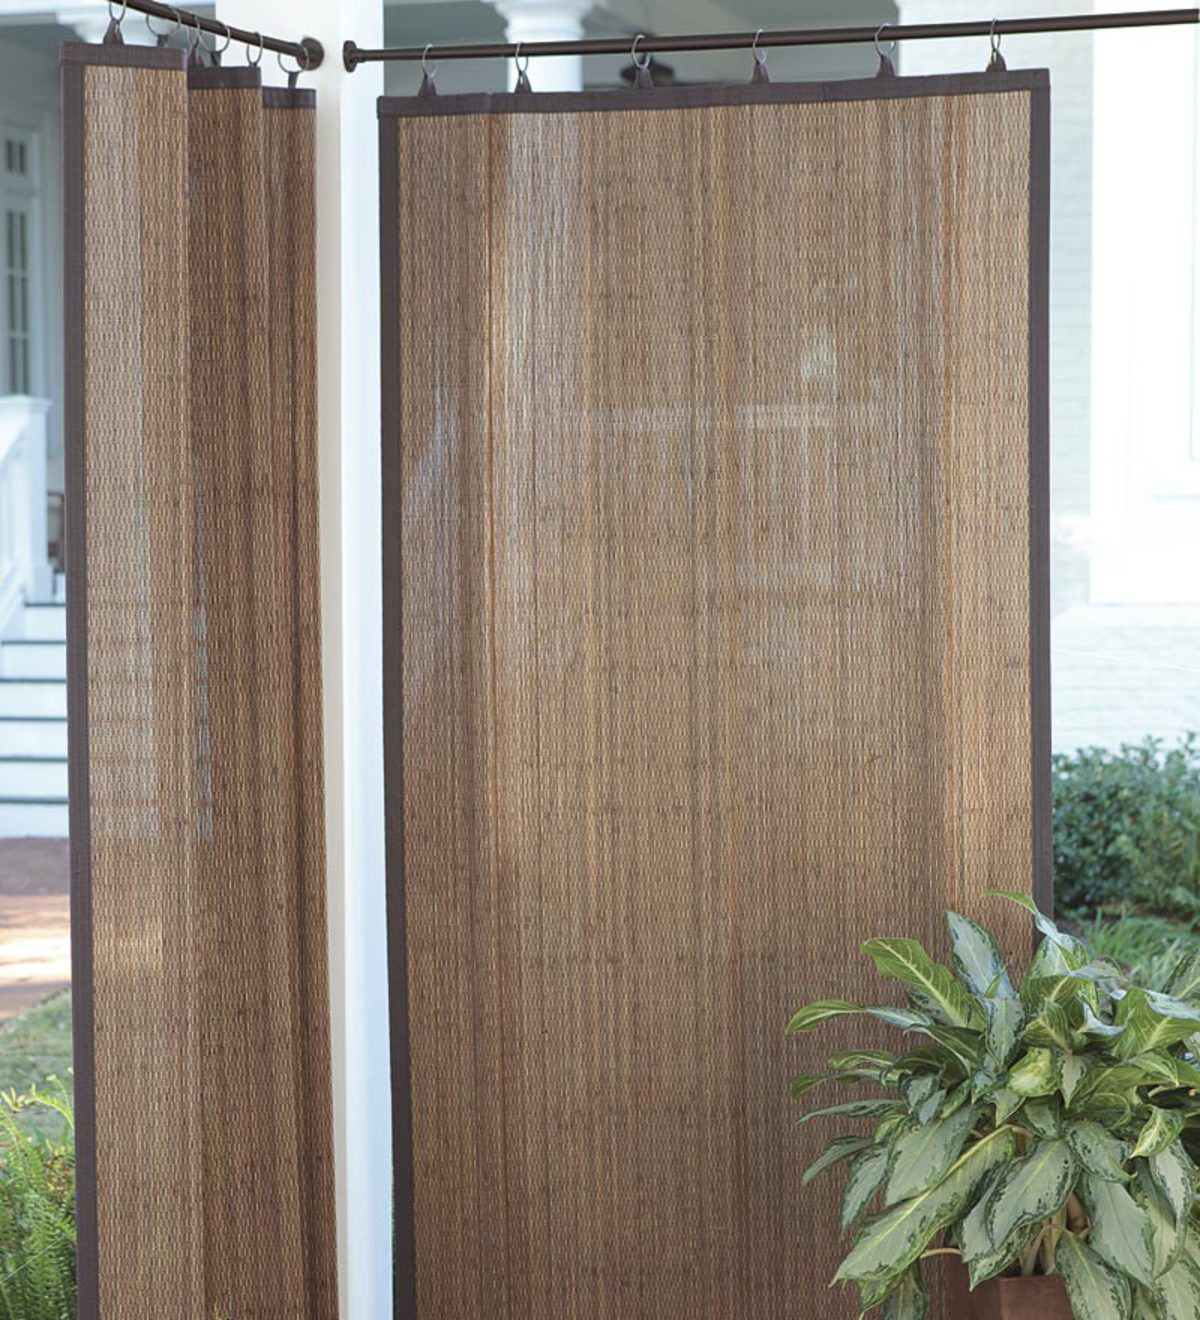 Create Shade And Privacy Outdoors With Outdoor Bamboo Curtain Panels The Patented Design With Ring Ta Outdoor Bamboo Curtains Bamboo Curtains Outdoor Curtains